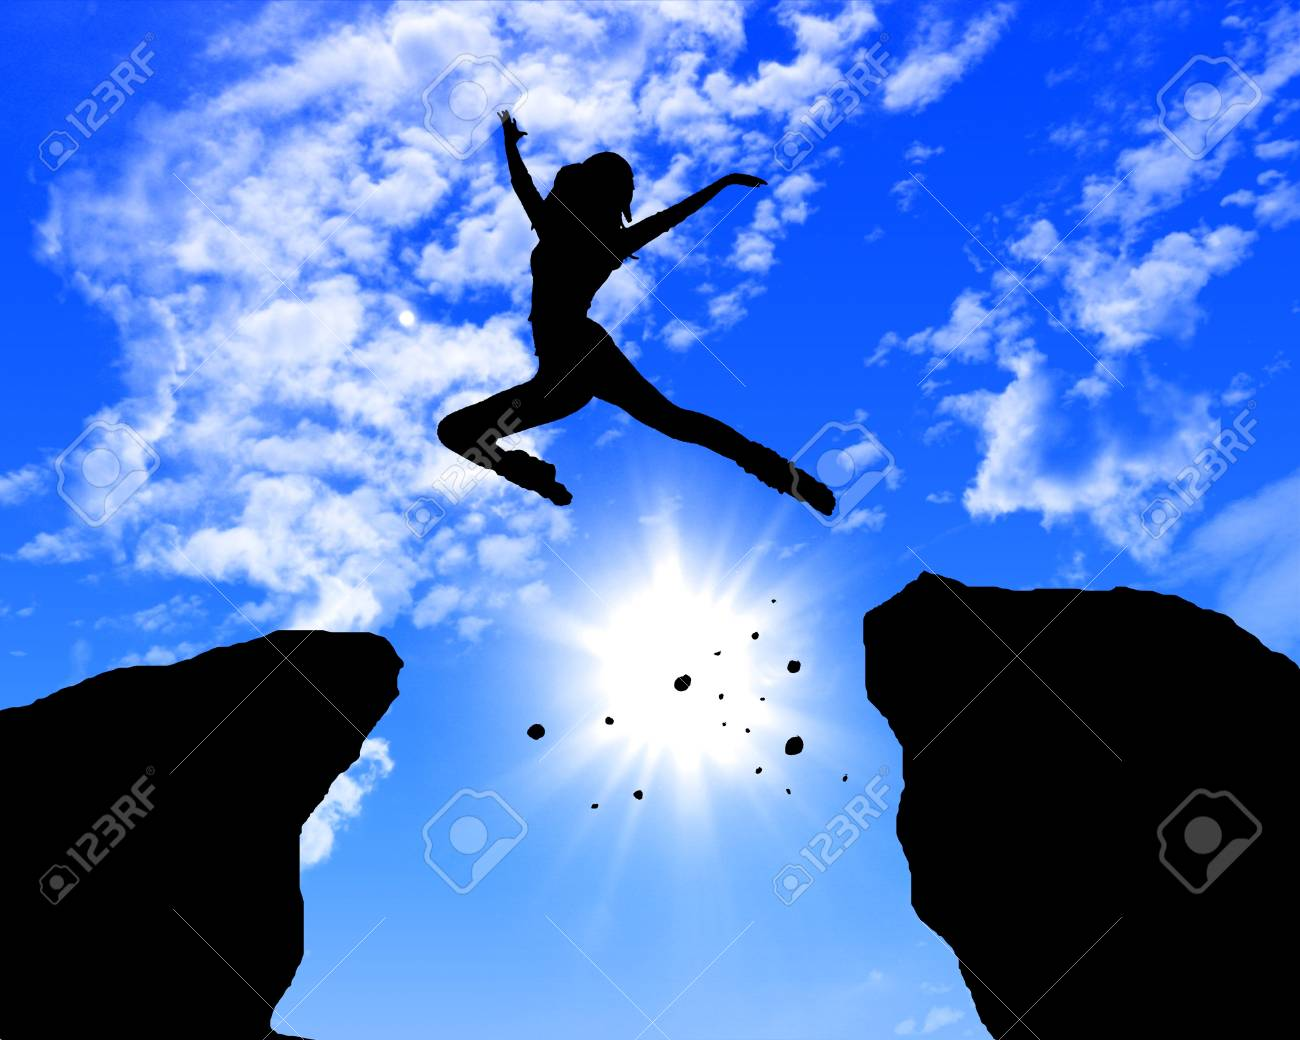 man jumping on the rocks against blue skymountain Stock Photo - 13227553